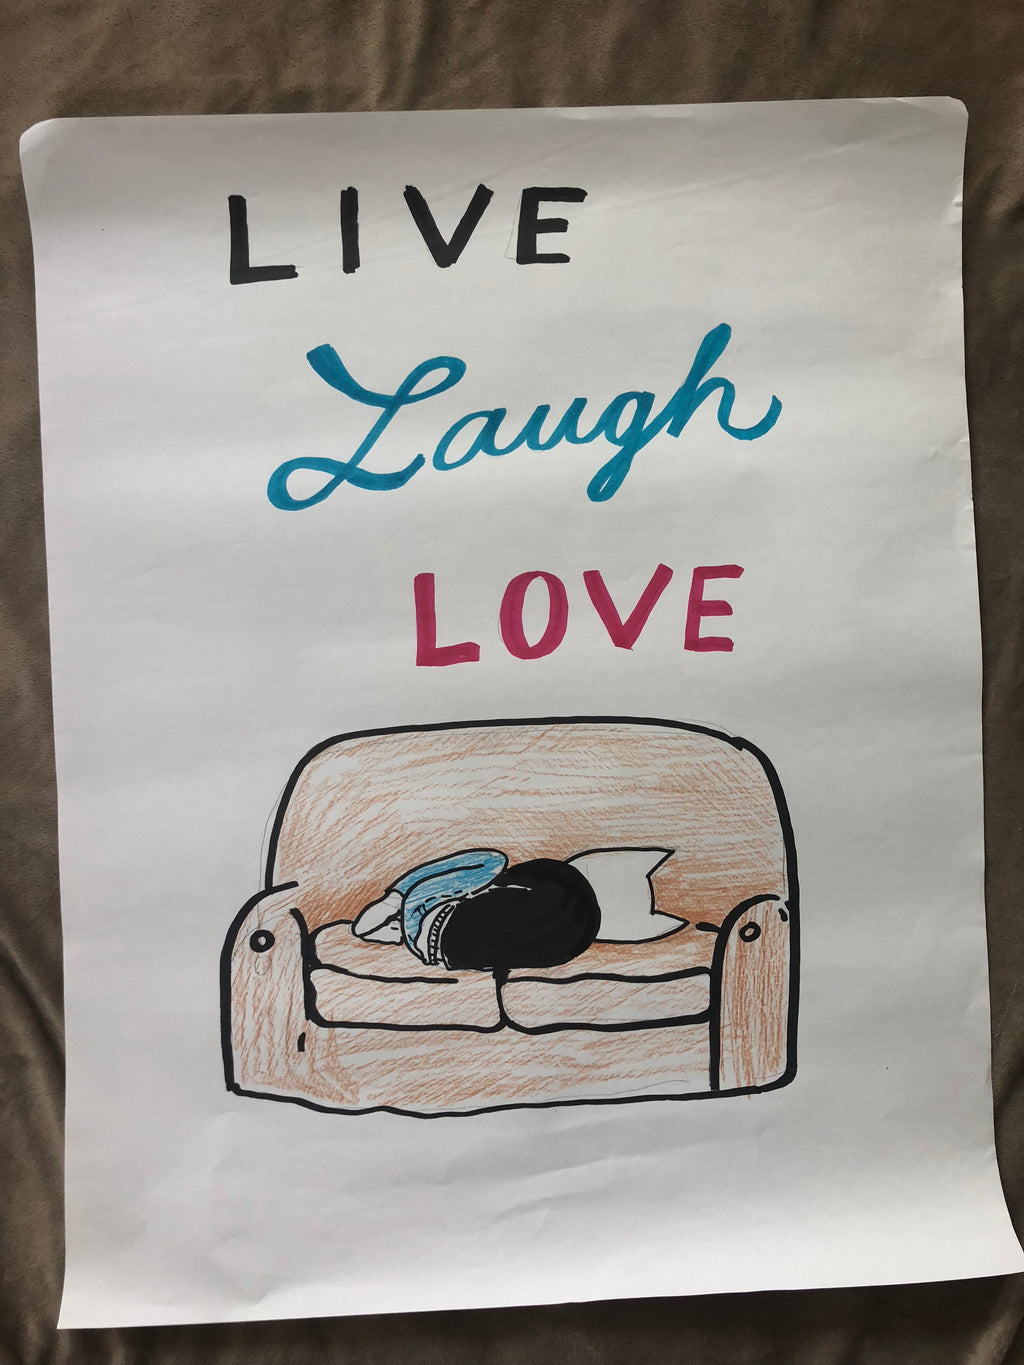 ORIGINAL POSTER - Live Laugh Love